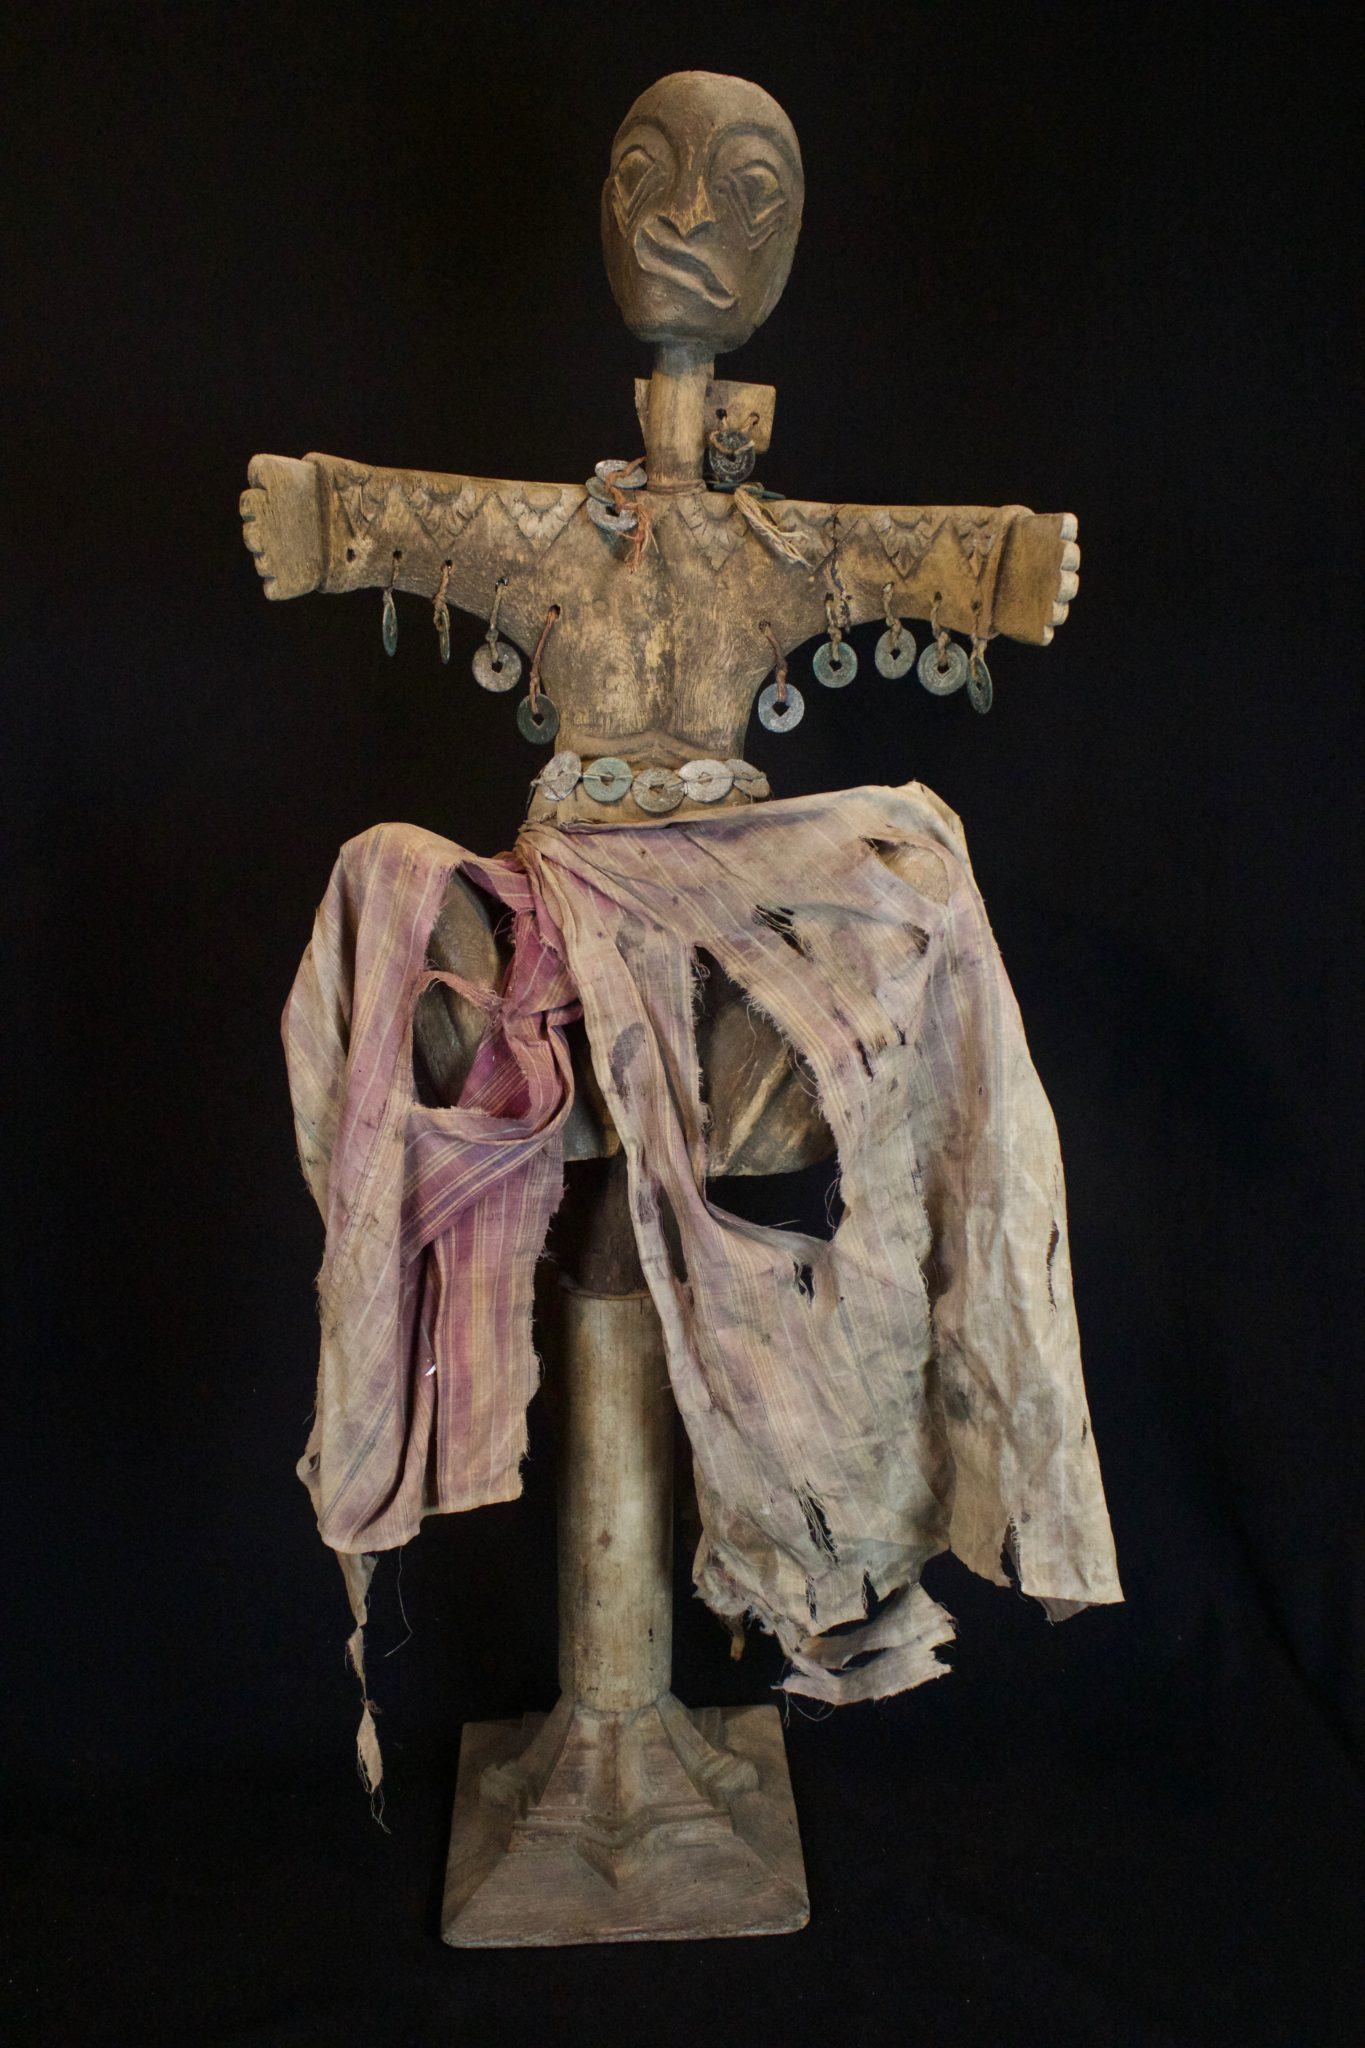 """Shaman Healing Fetish Wand Lombok Island, Lesser Sunda Islands, Indonesia, Late 19th c, Wood, cotton cloth, metal coins. This is held in the shaman's hand to contact the spirits for healing rituals. 35"""" x 13 ½"""" x 7 ½"""", $2400."""